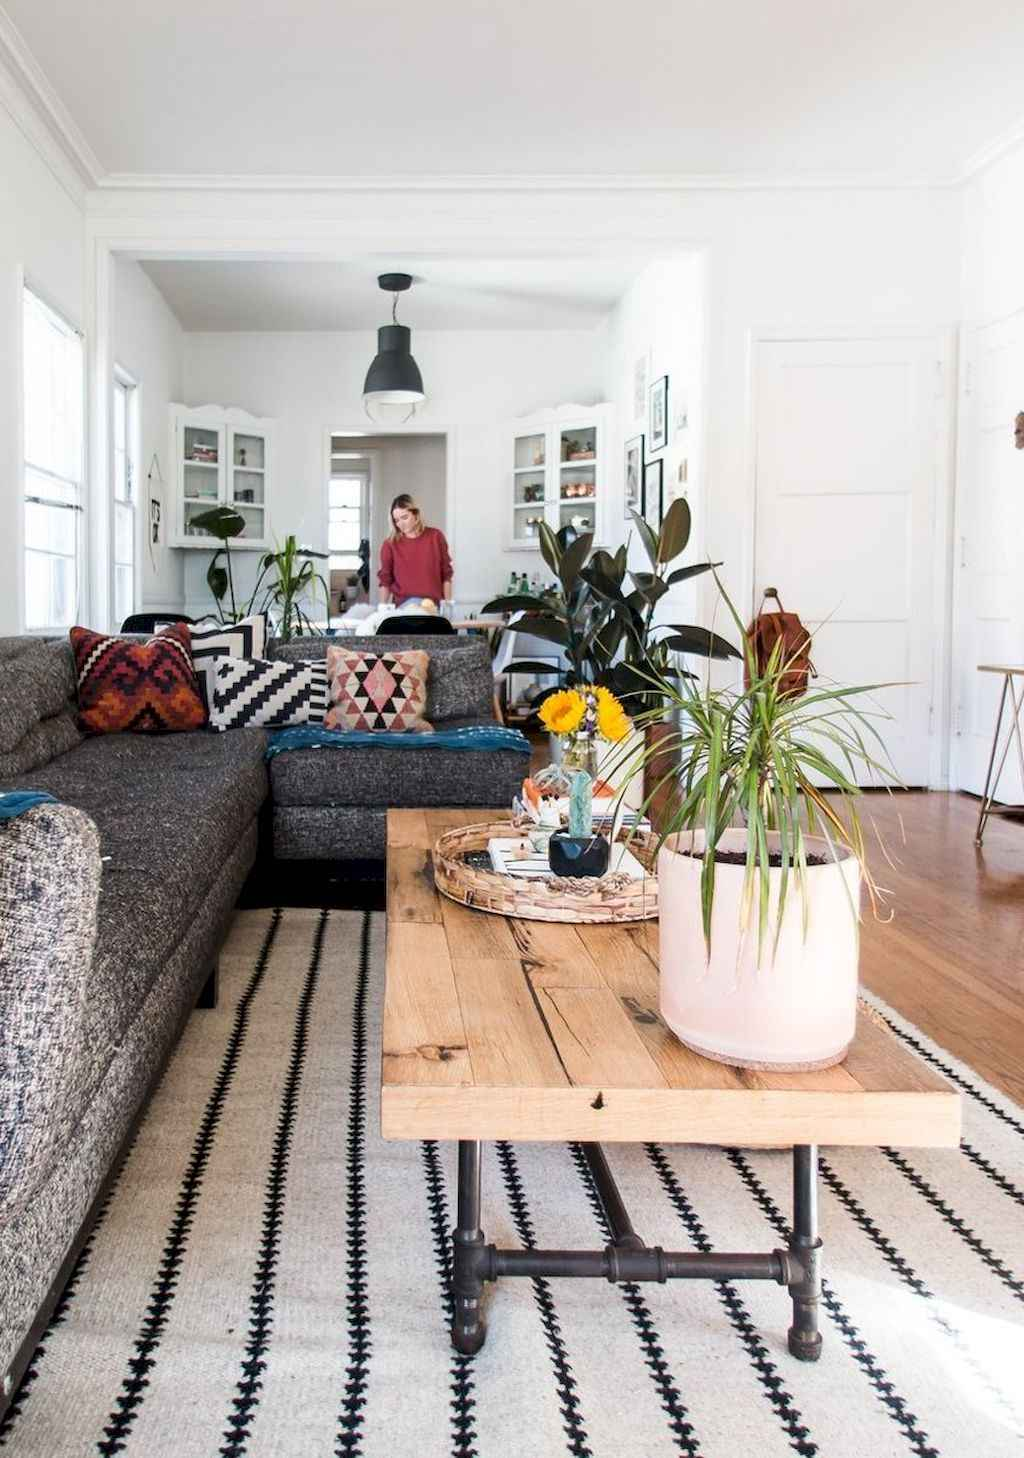 Couples first apartment decorating ideas (120)